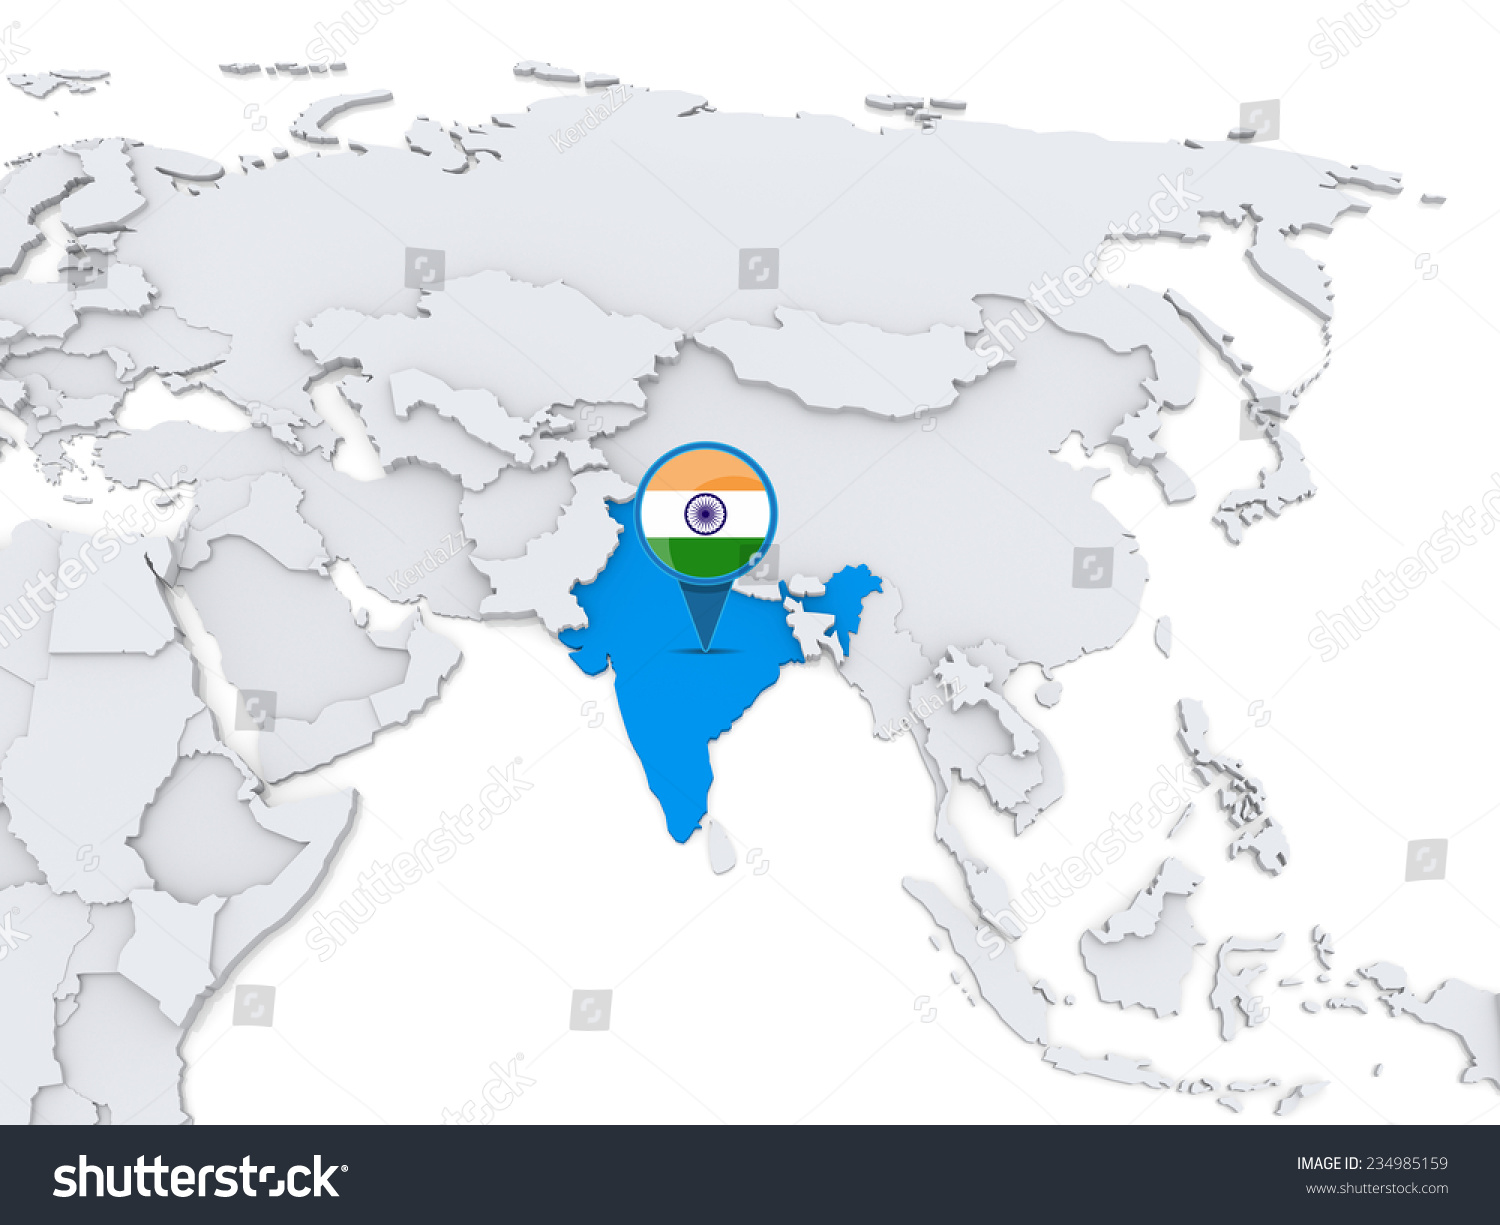 Highlighted india on map asia national stock illustration 234985159 highlighted india on map of asia with national flag gumiabroncs Image collections